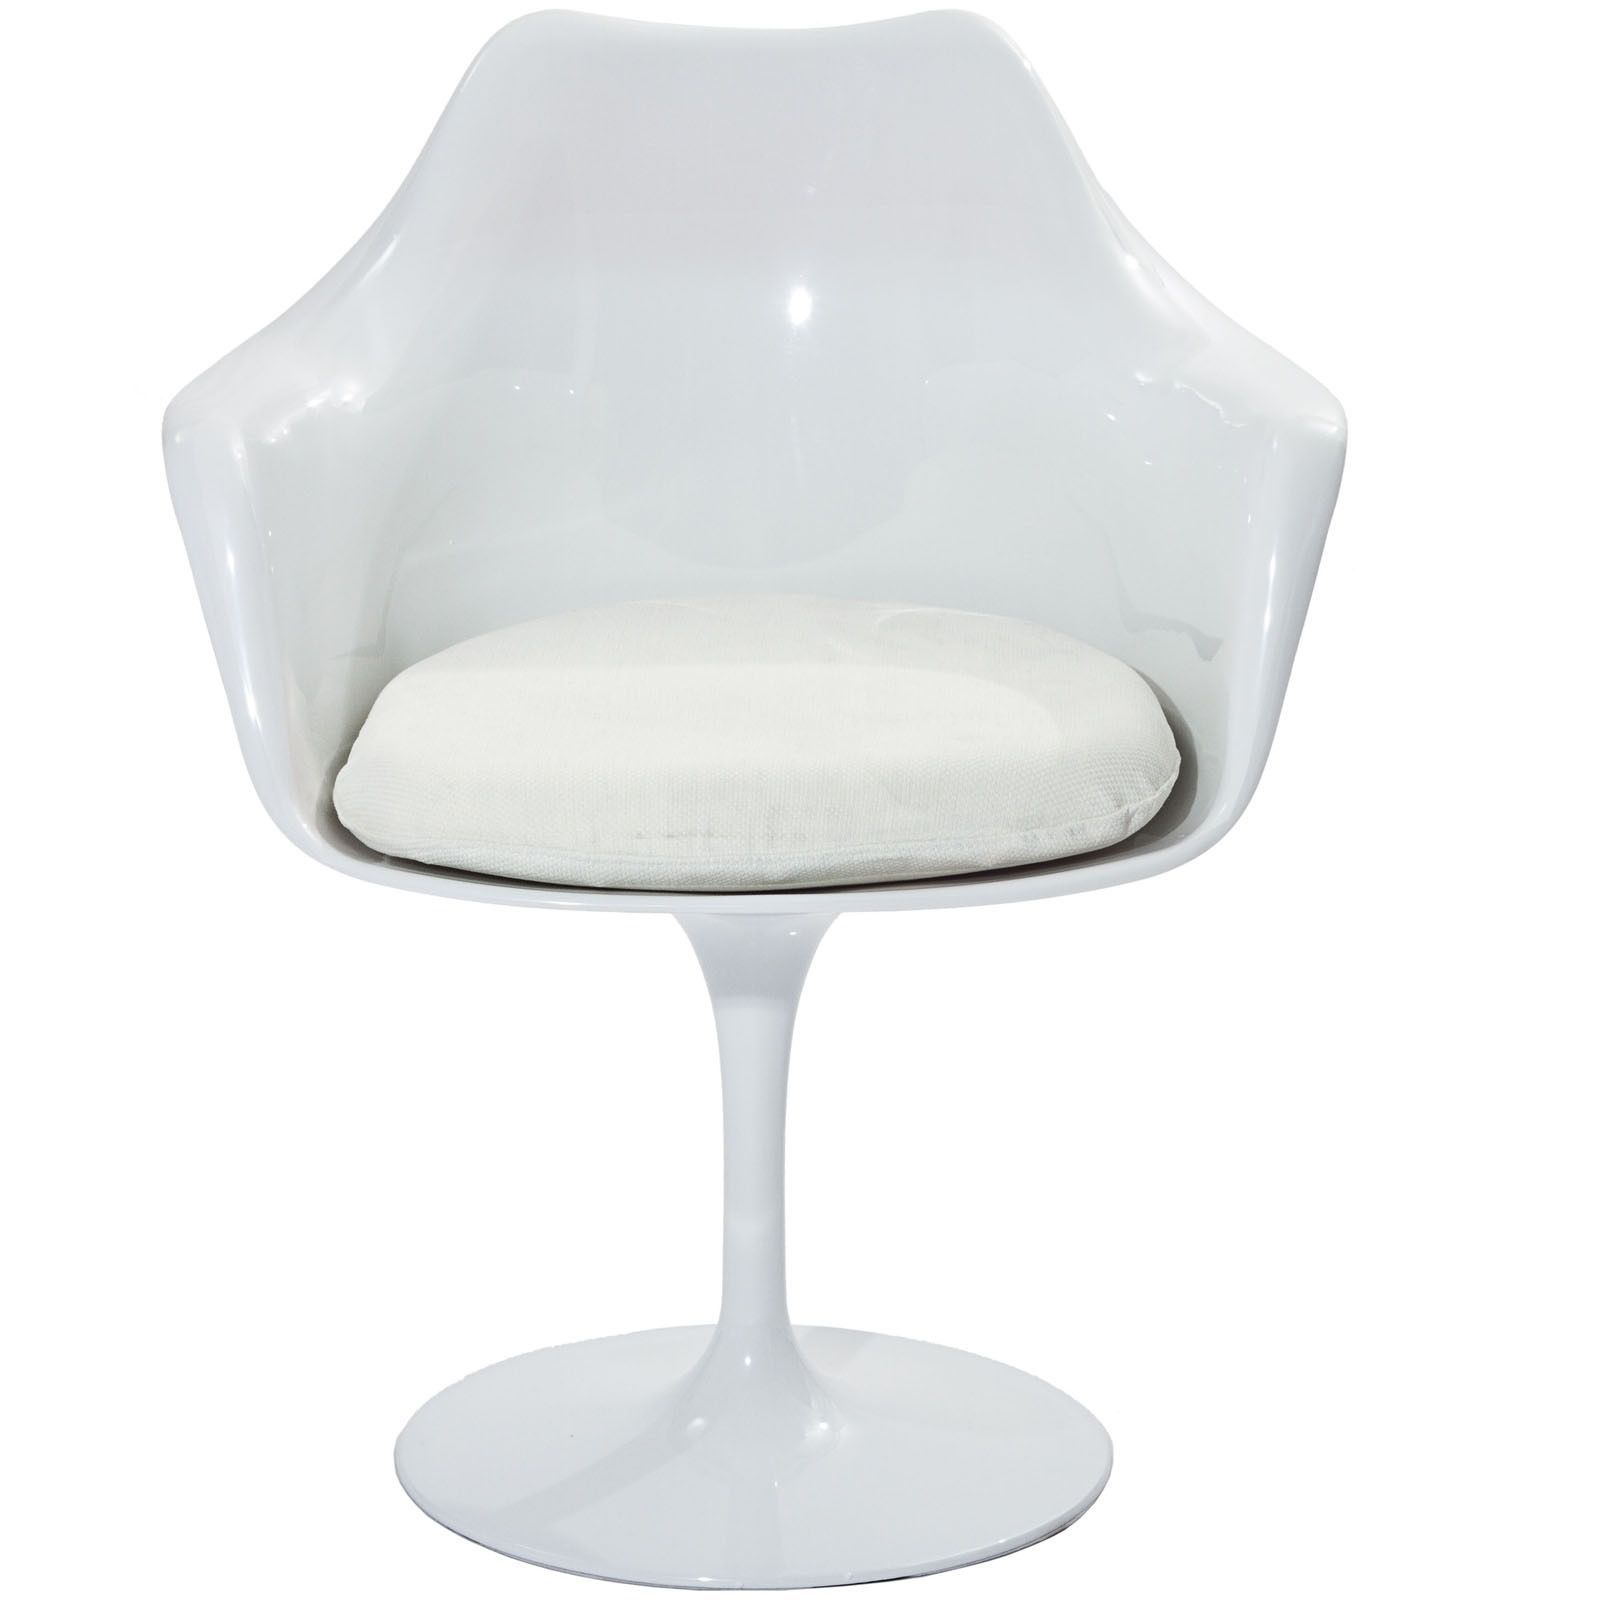 Superb Modway Eero Saarinen Style Tulip Arm Chair With White Andrewgaddart Wooden Chair Designs For Living Room Andrewgaddartcom